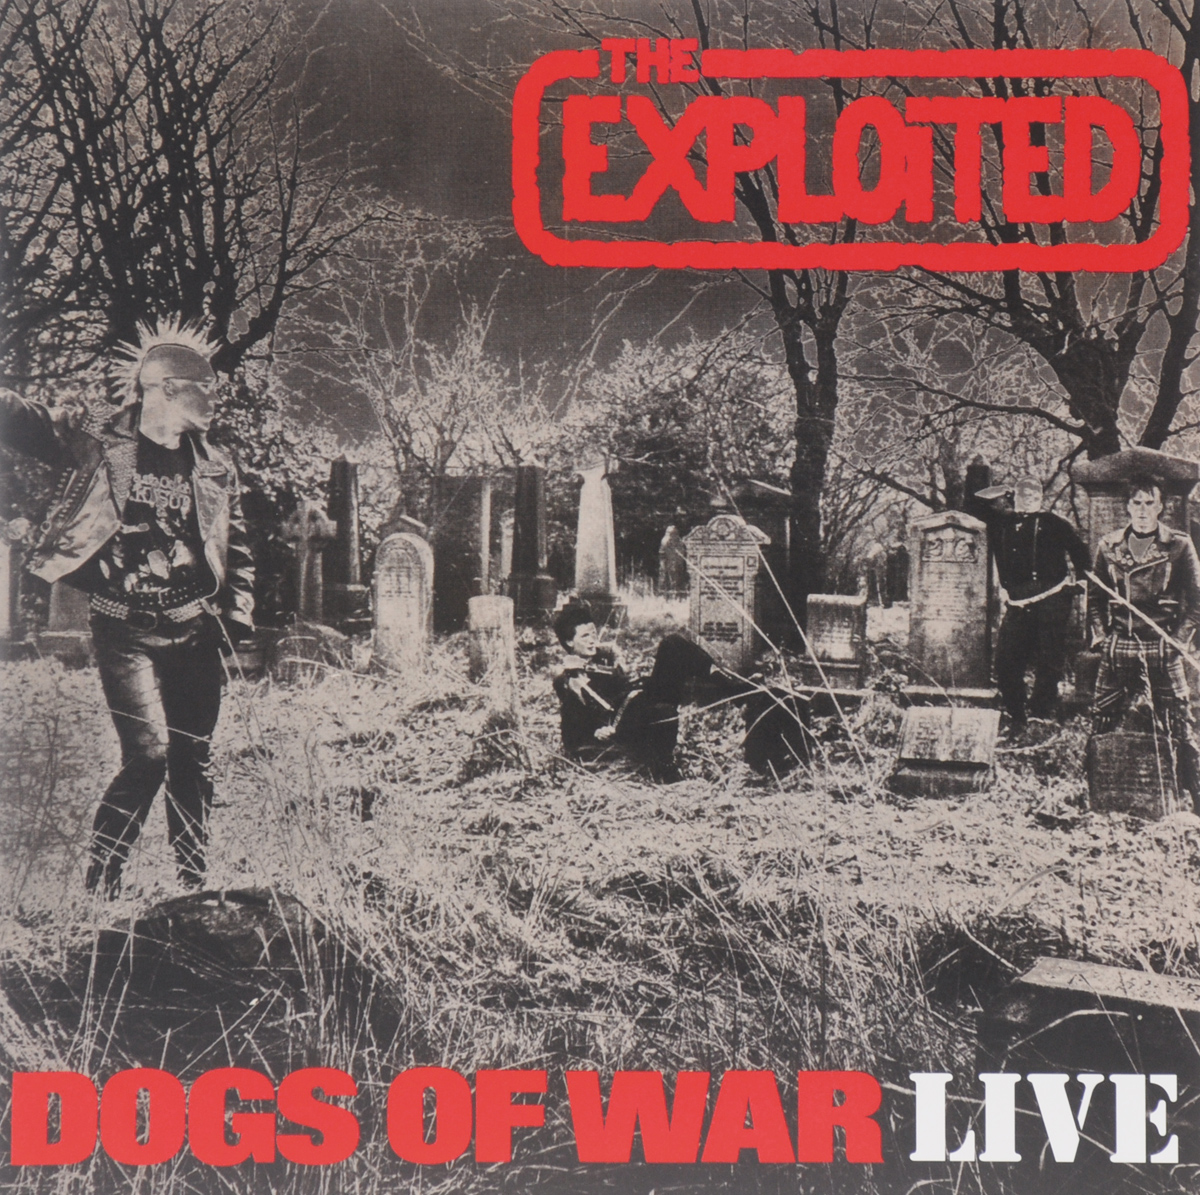 The Exploited Exploited. Dogs Of War Live. Limited Edition (LP) space deliverance limited edition glow in the dark vinyl lp